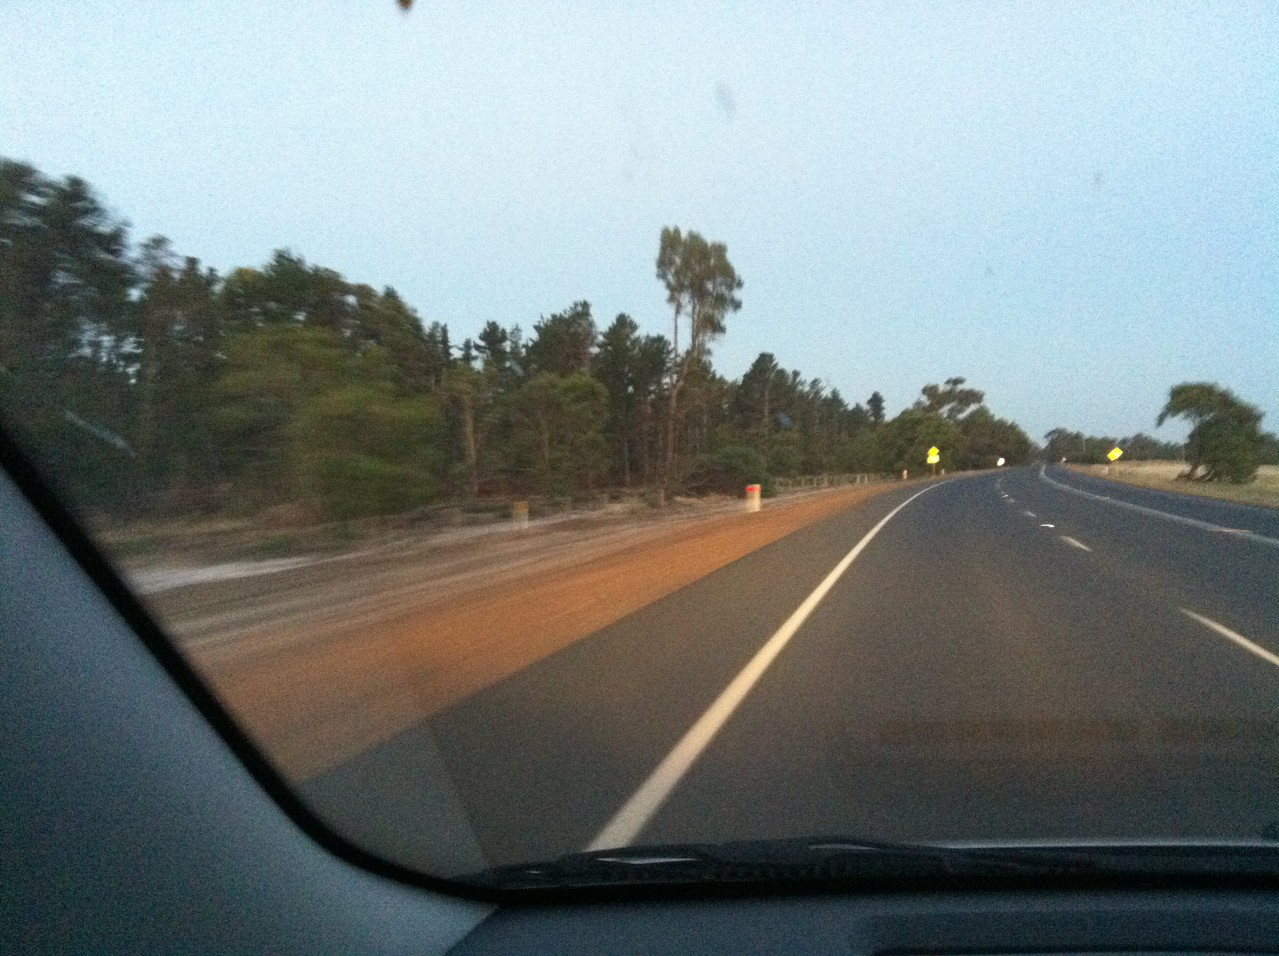 ... and on the road again ... we actually saw some kangaroos!